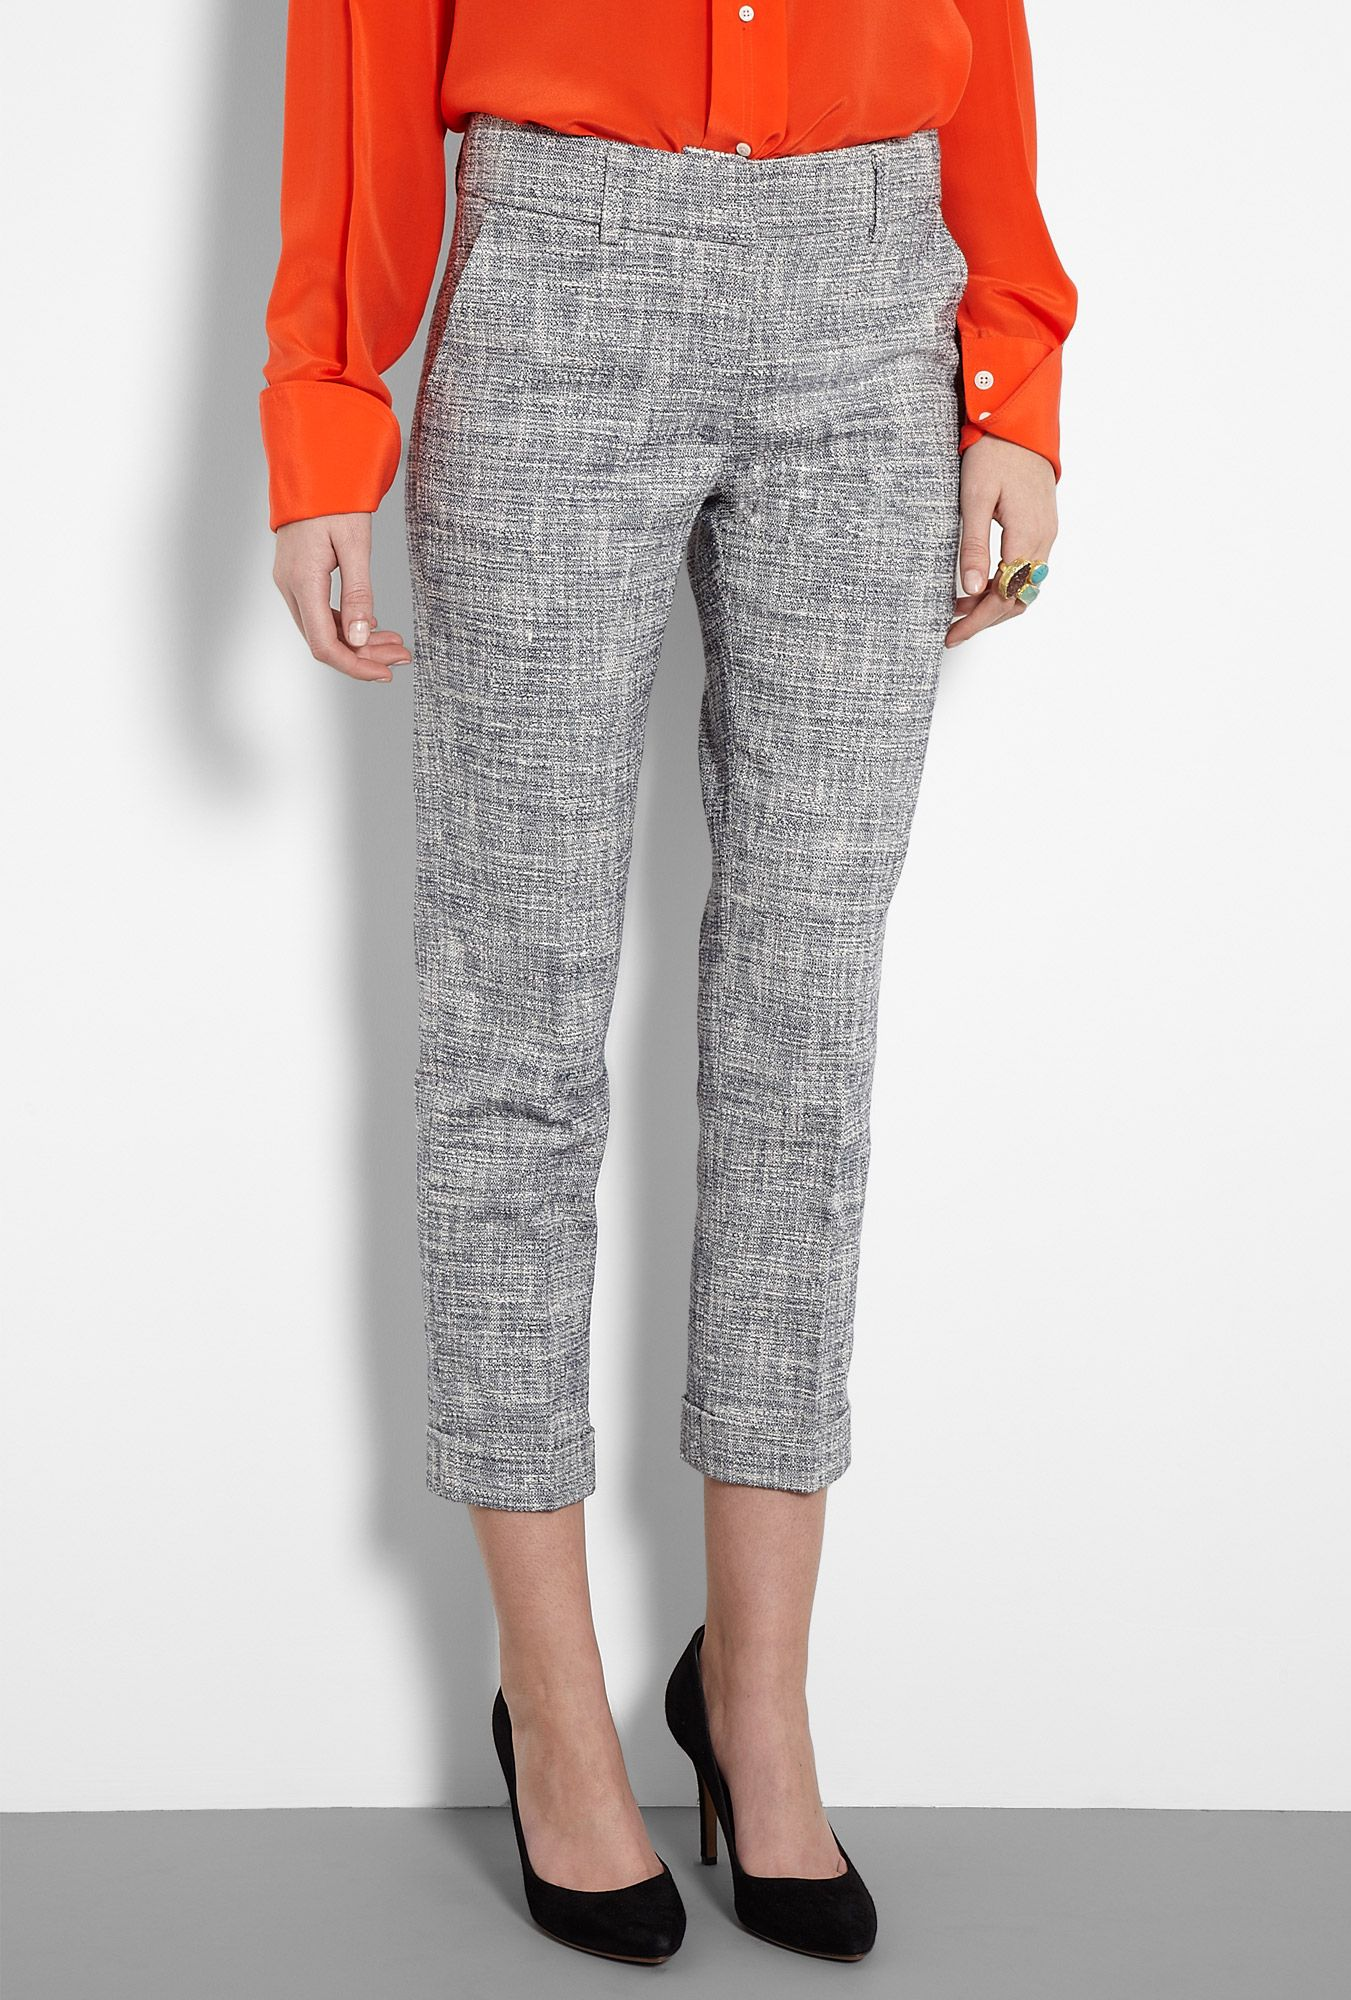 Love these 3/4 length tweed trousers